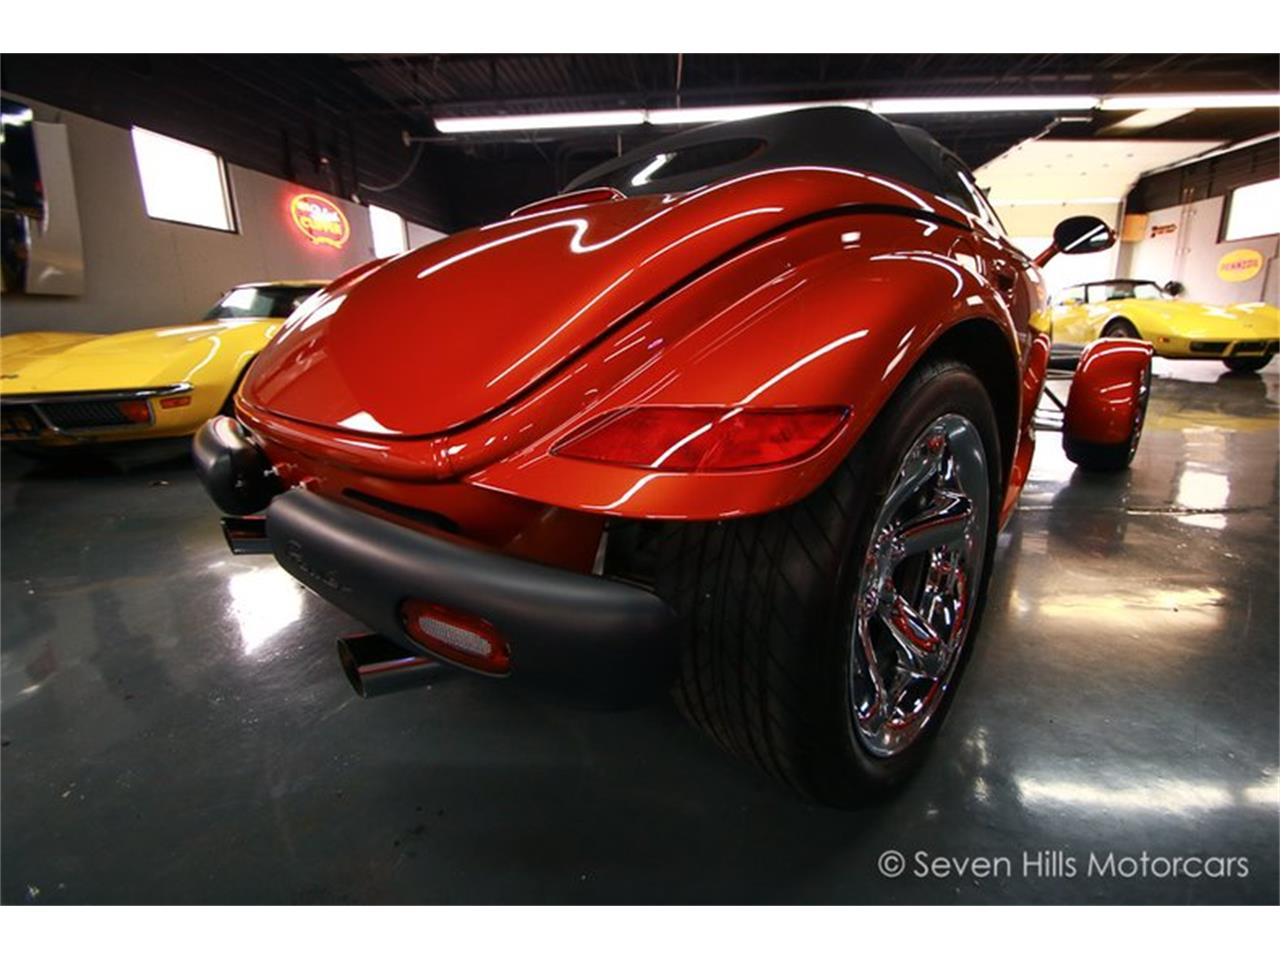 Large Picture of 2001 Prowler located in Cincinnati Ohio Offered by Seven Hills Motorcars - PW1N